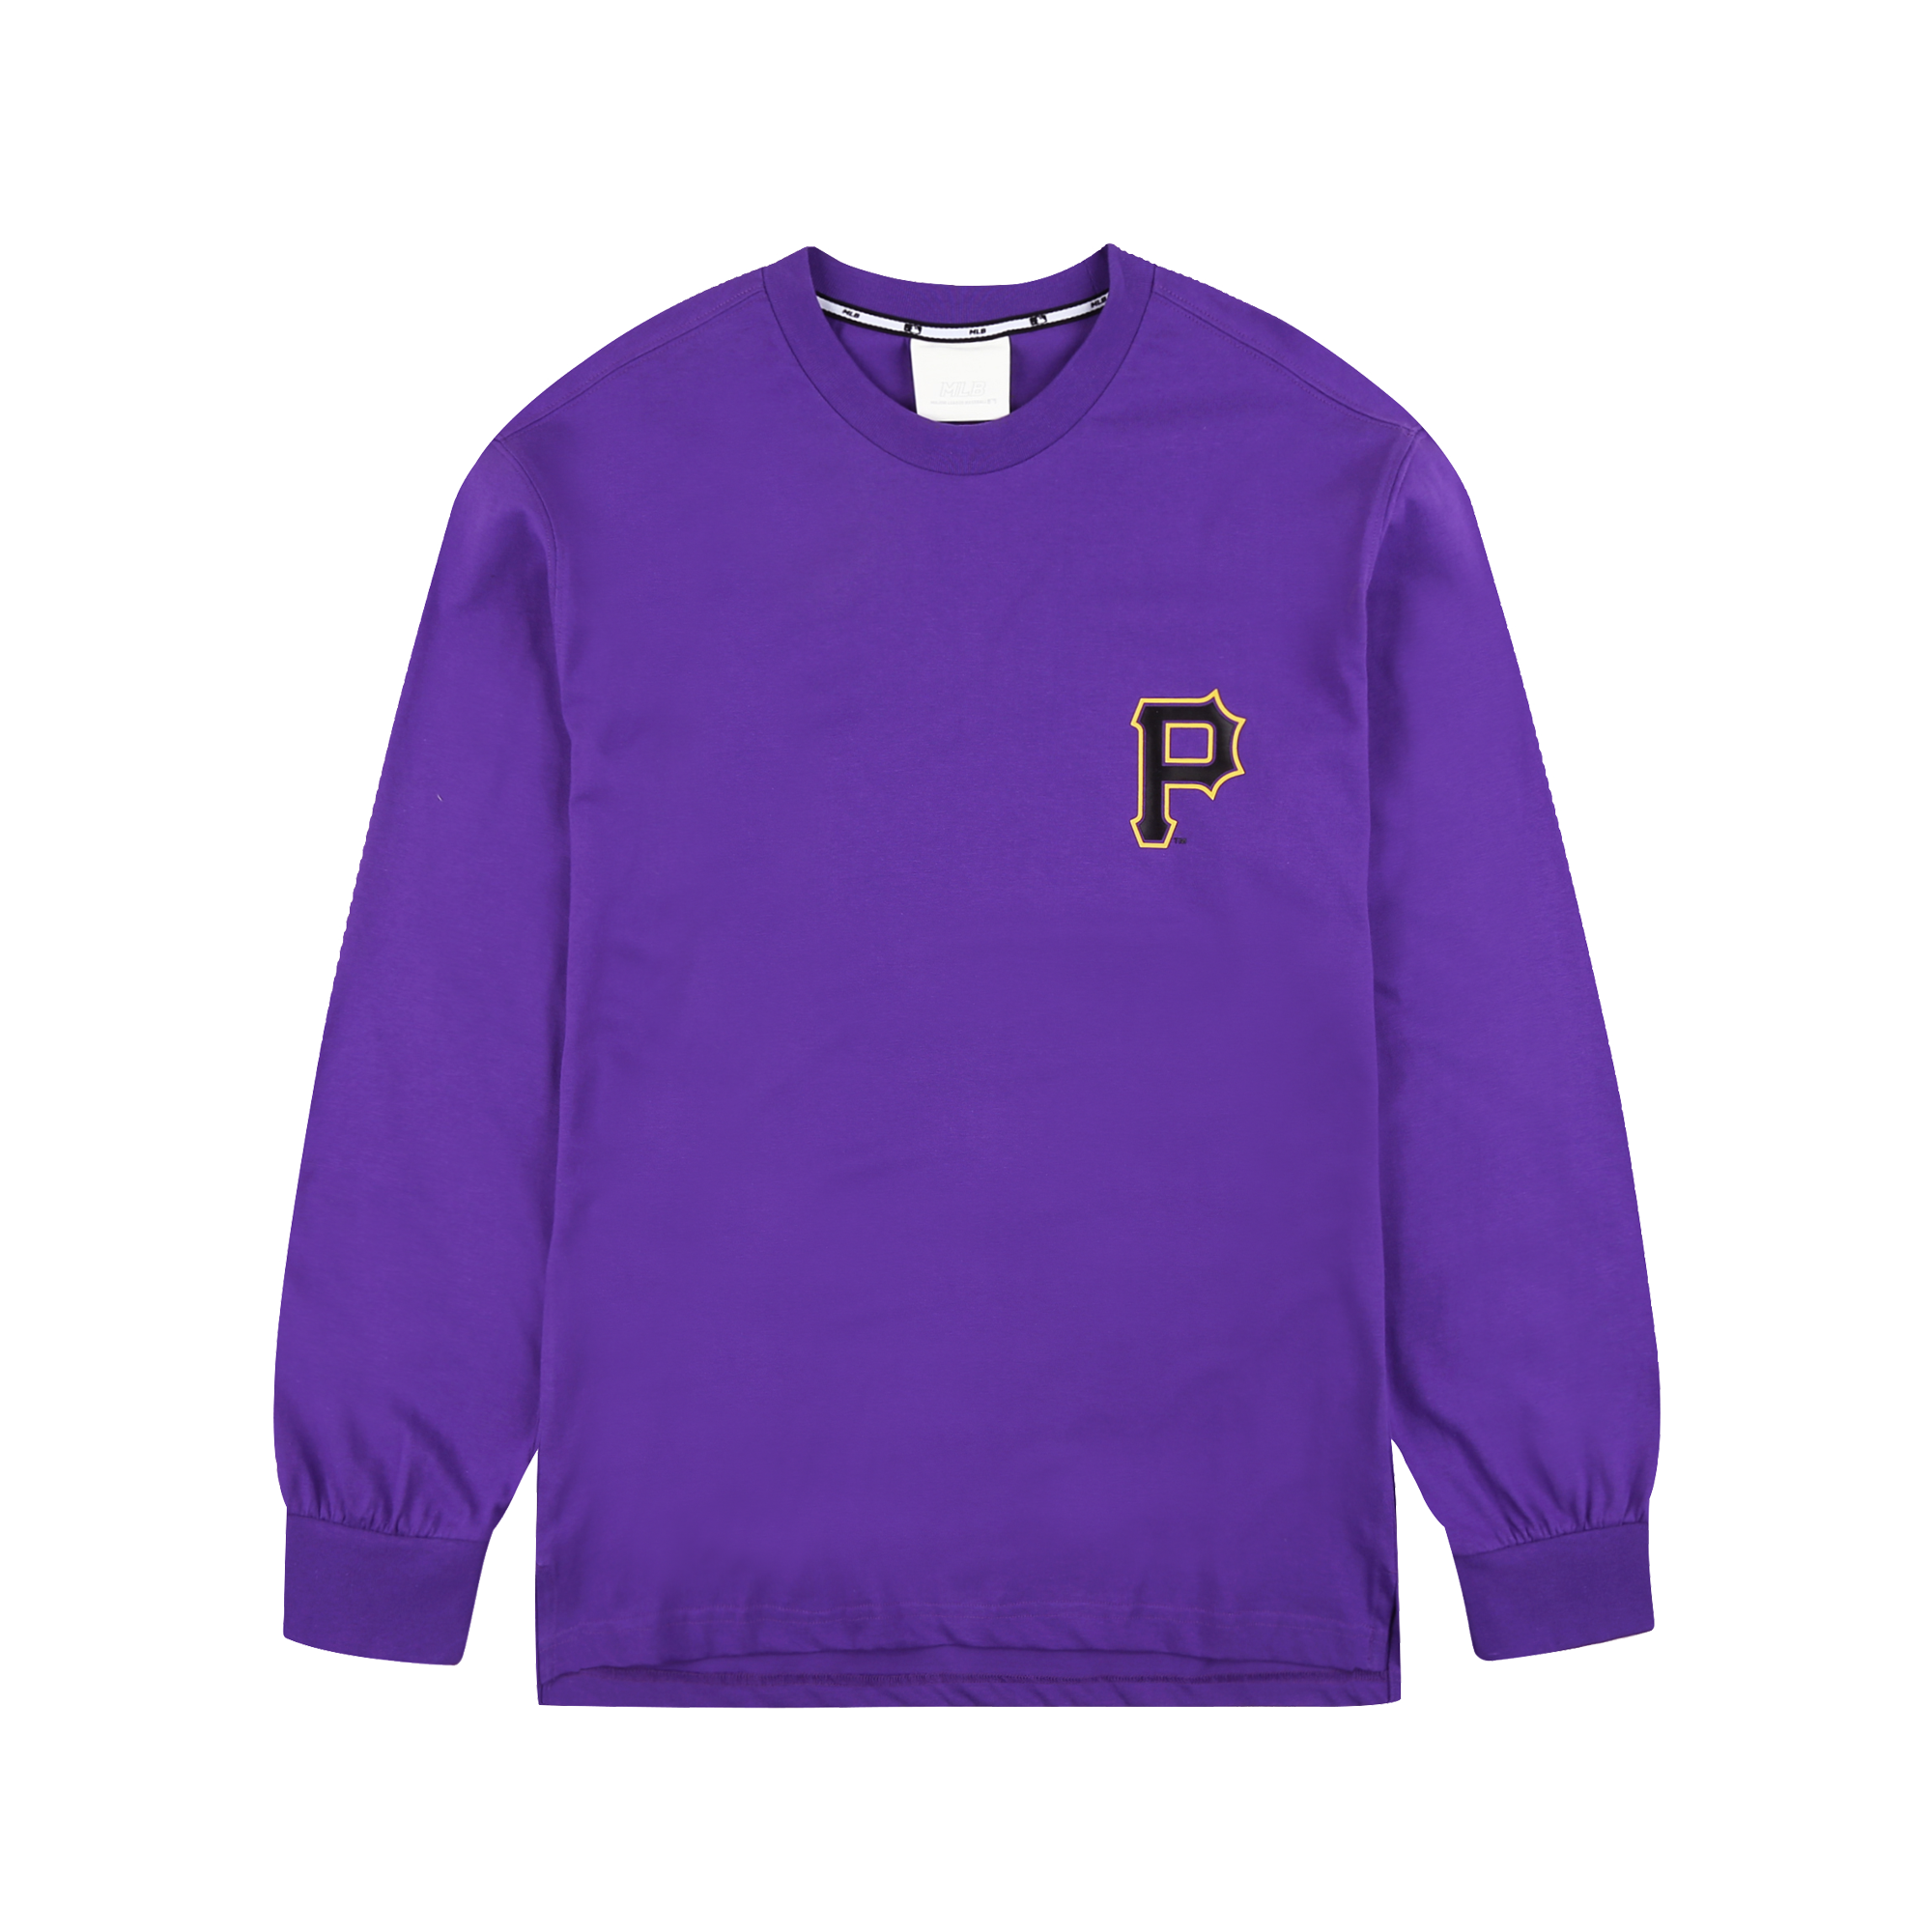 PITTSBURGH PIRATES COOPERS TOWN LONG SLEEVE T-SHIRT